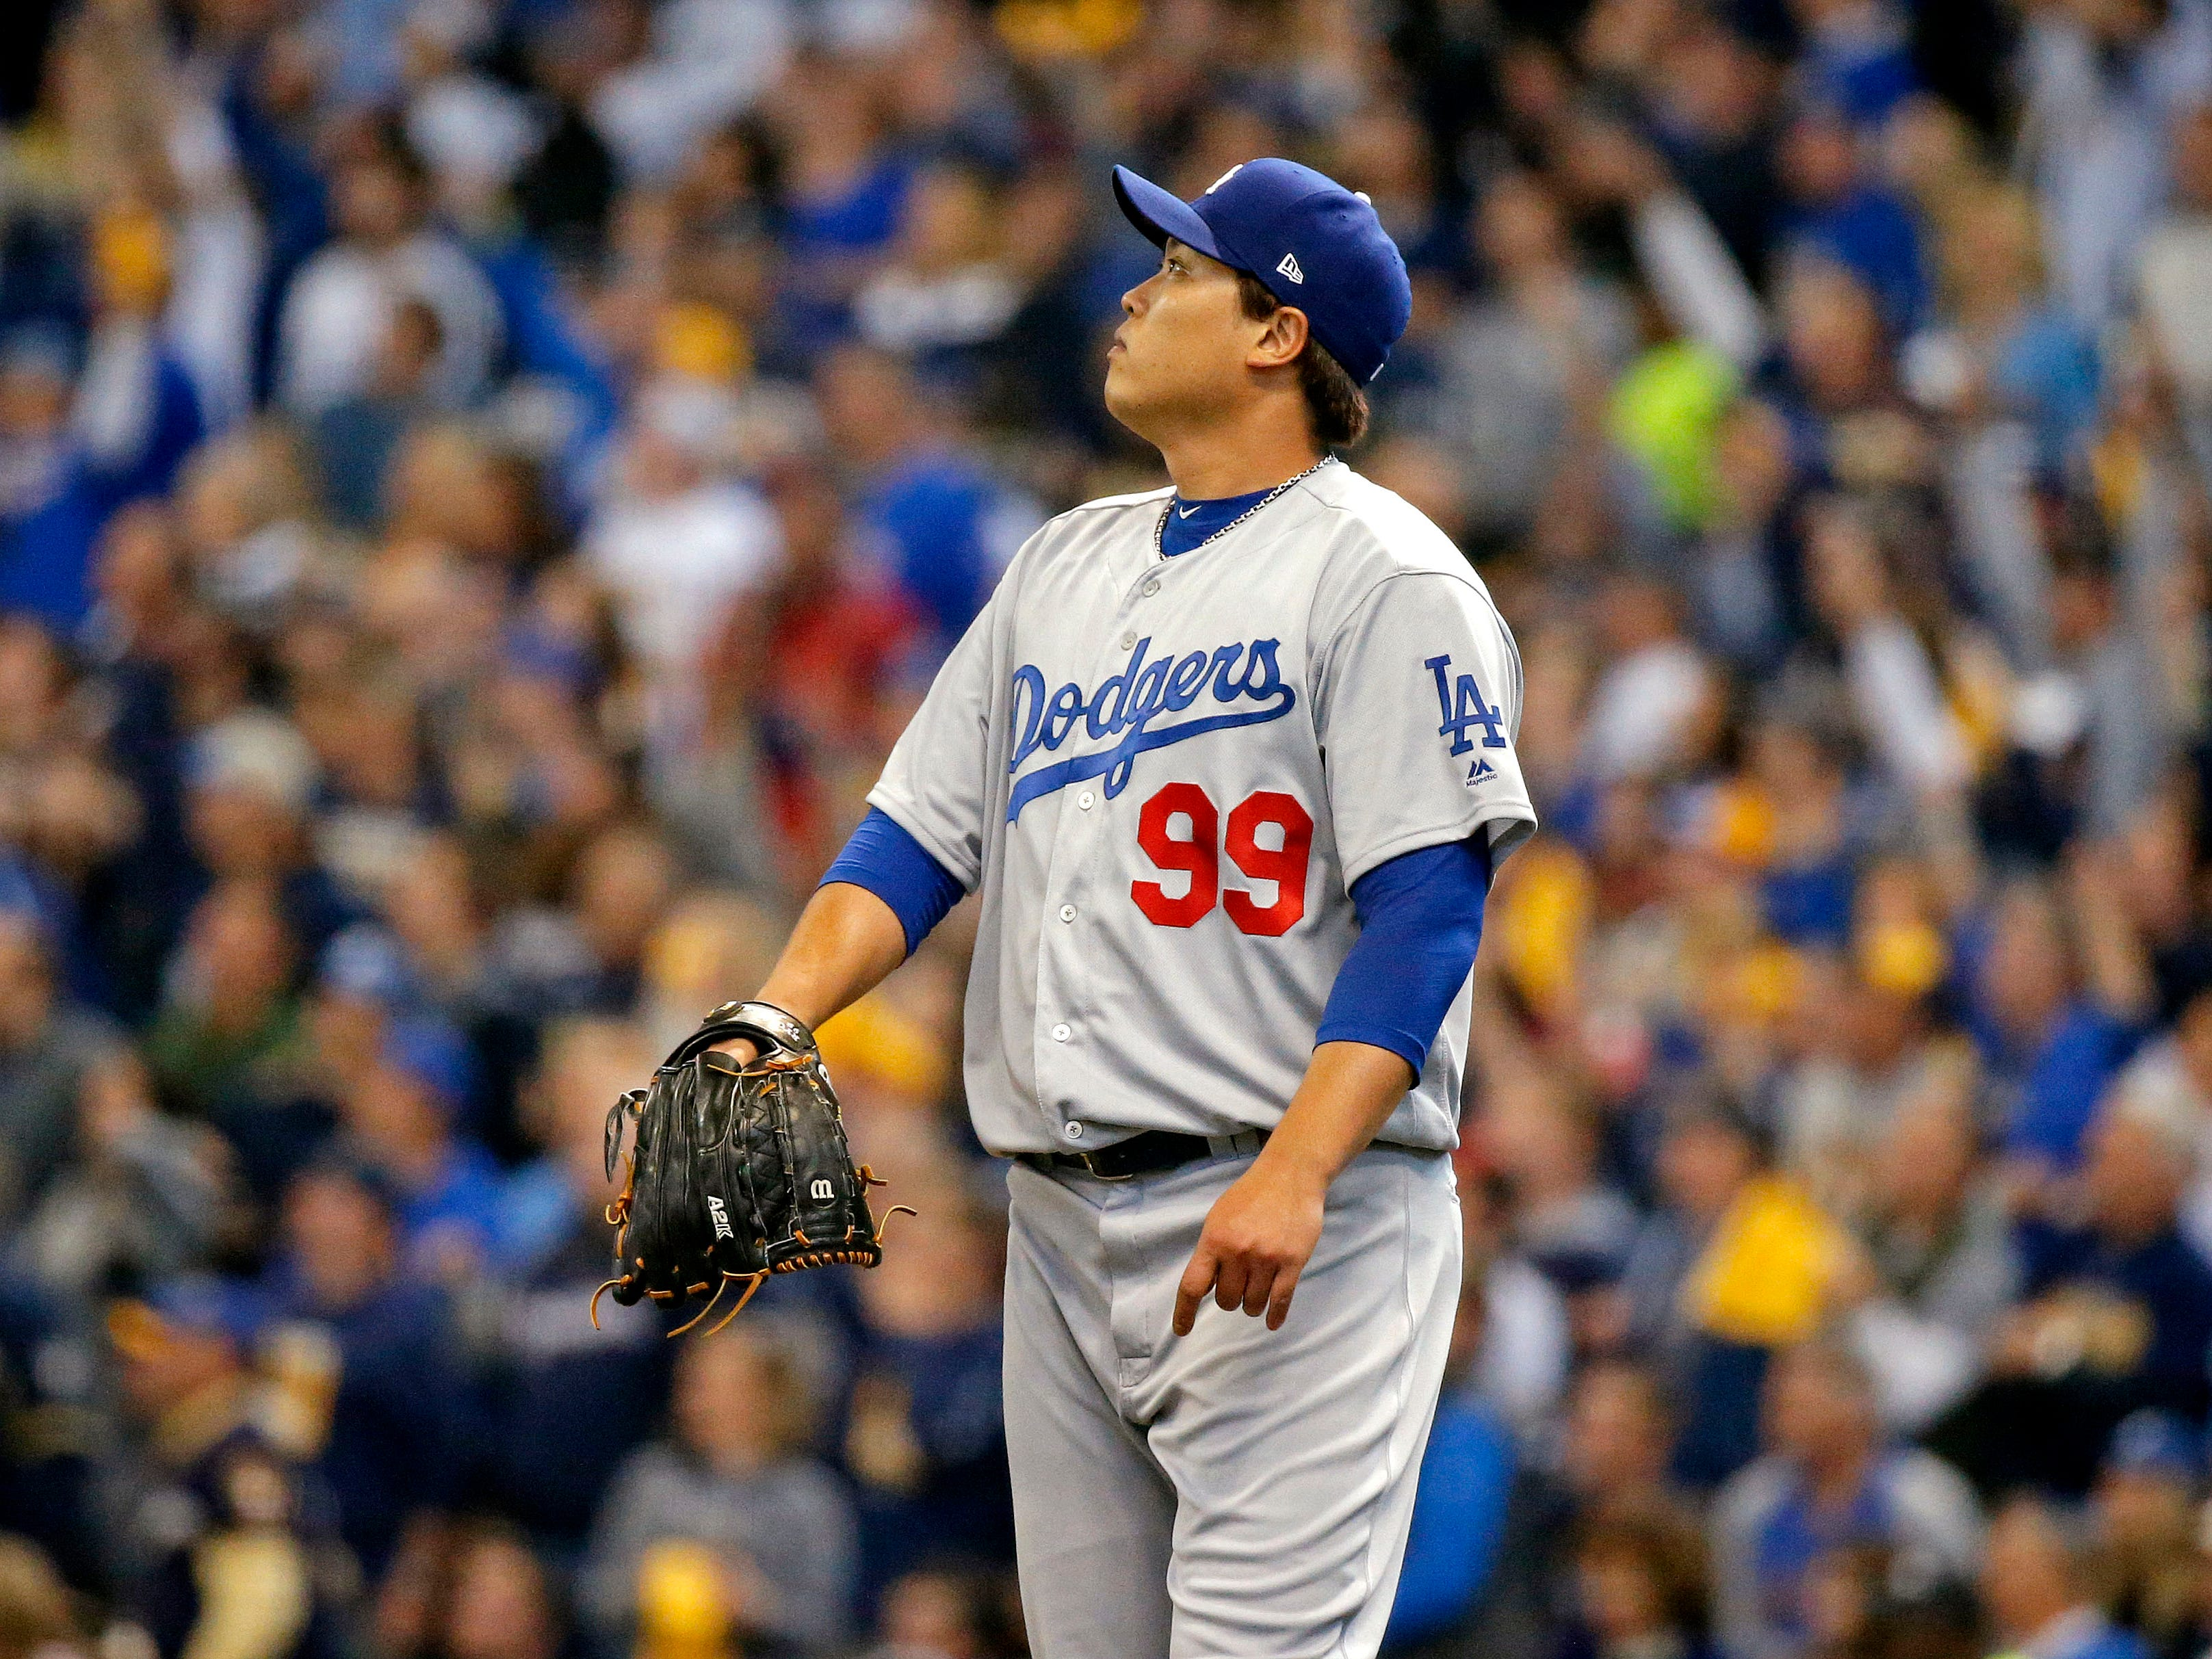 NLCS Game 2: Dodgers starting pitcher Hyun-Jin Ryu watches a home run hit by Brewers shortstop Orlando Arcia in the fifth inning.